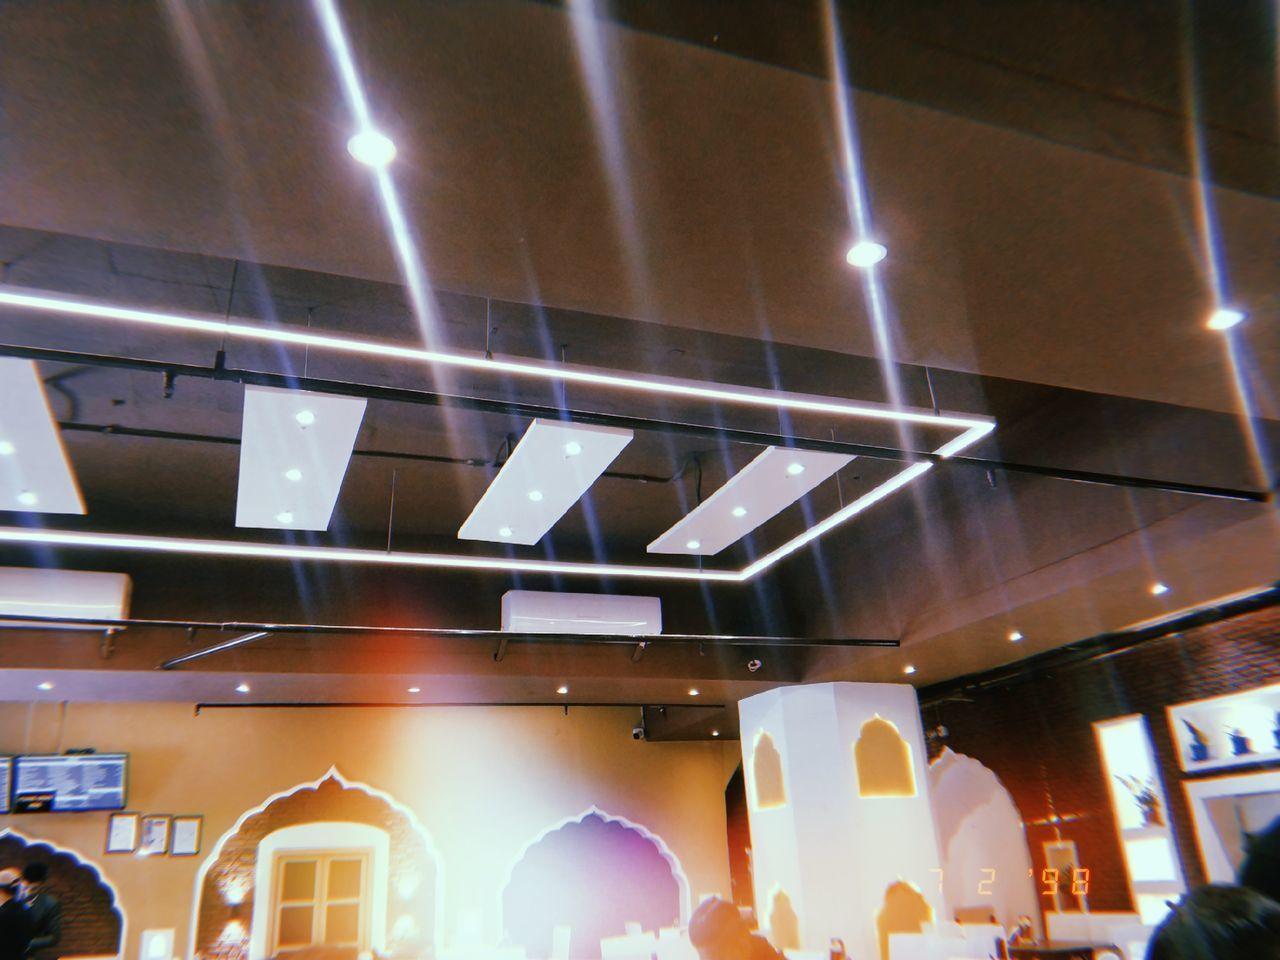 LOW ANGLE VIEW OF ILLUMINATED LIGHTS HANGING AT CEILING